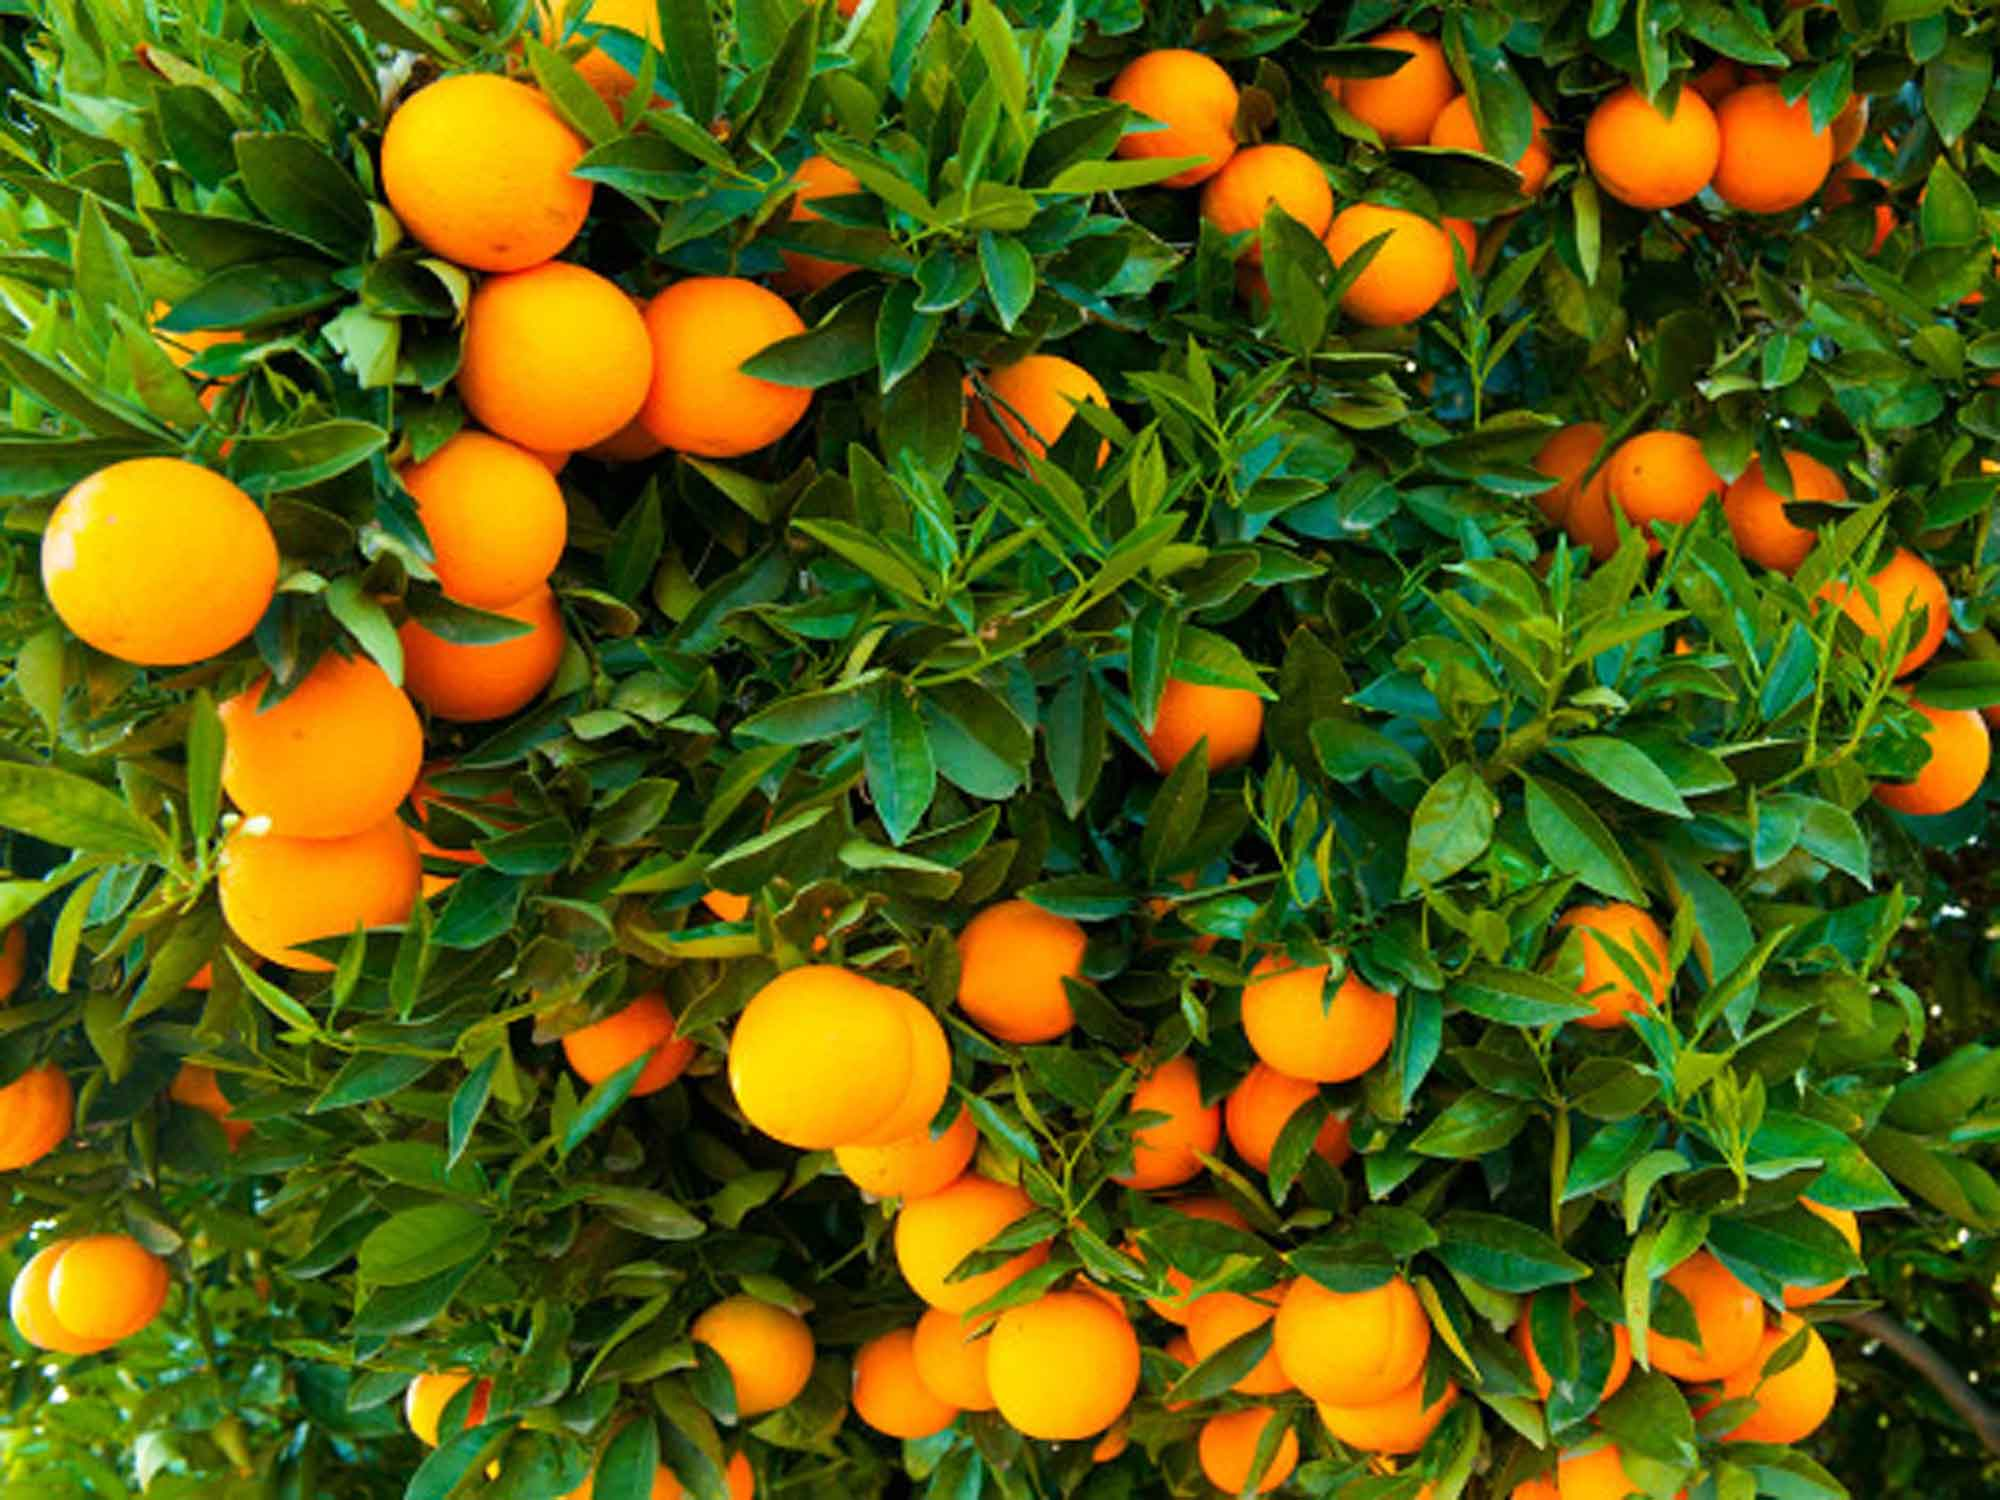 Tookii things to do with kids fruit tree one of the outdoor activities for kids